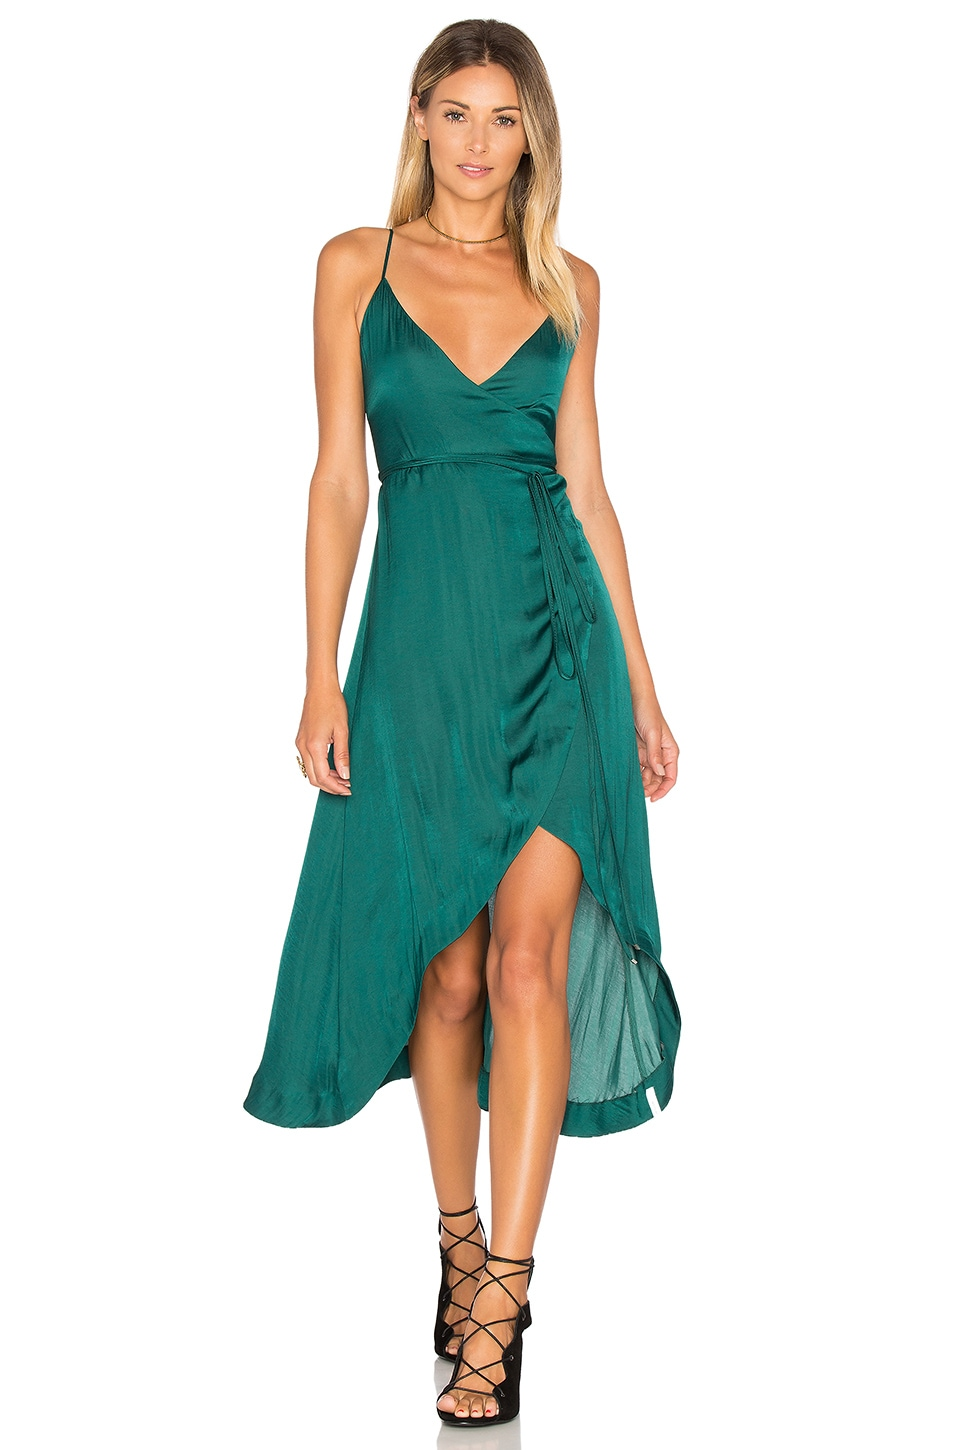 One Teaspoon San Cerena Wrap Dress in Emerald